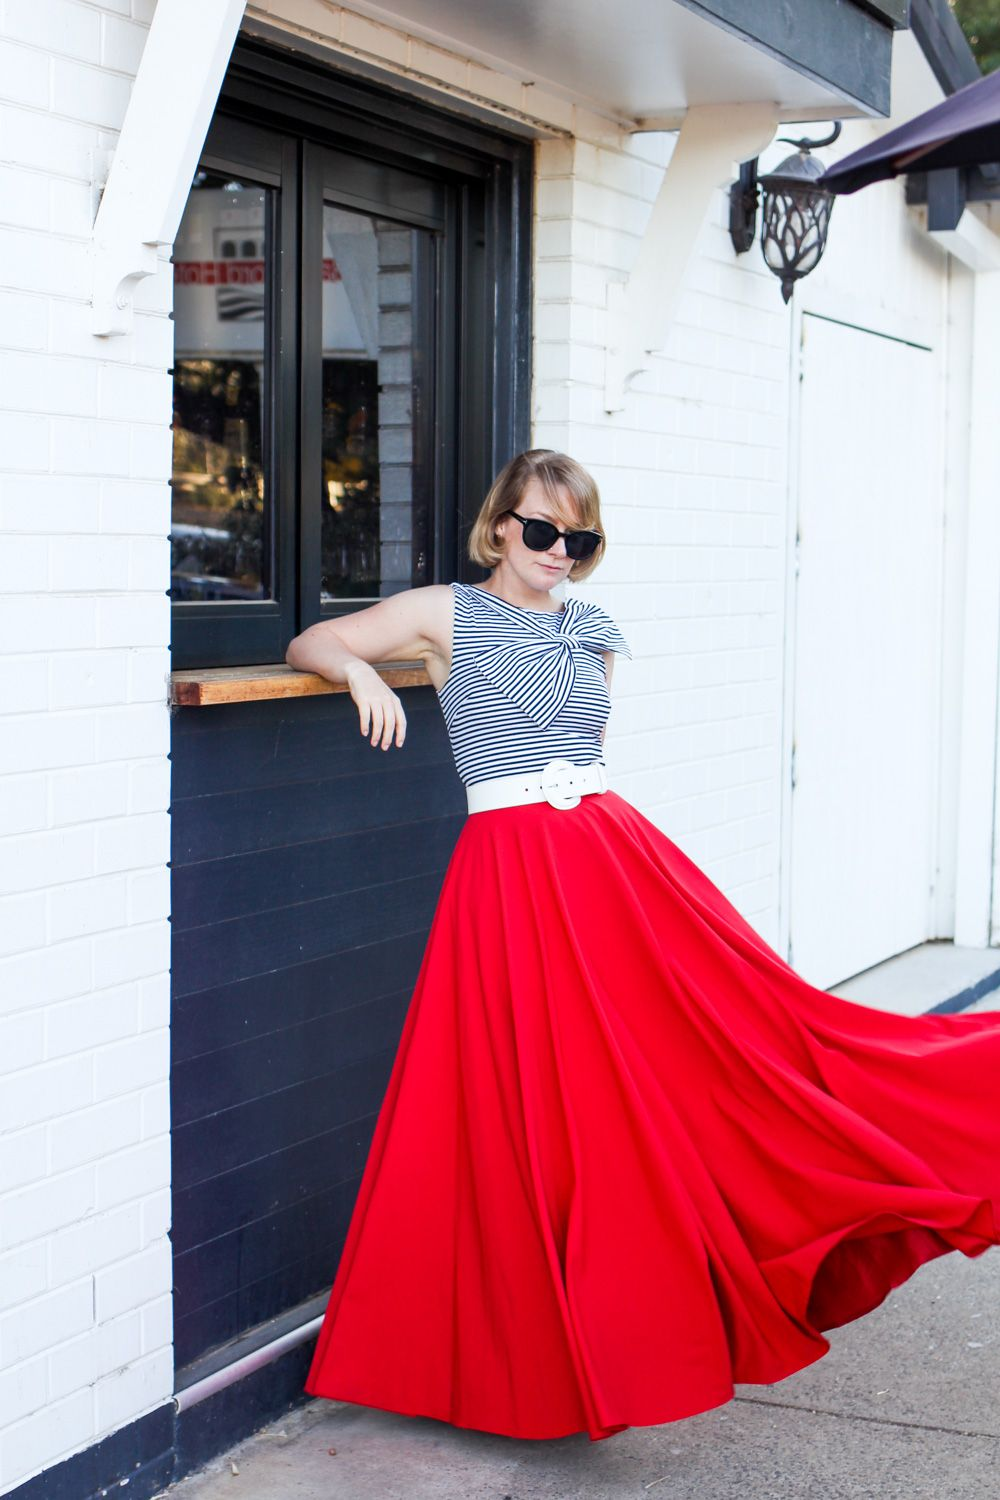 findingfemme wears Mokkafiveoclock red full circle maxi skirt. I ...